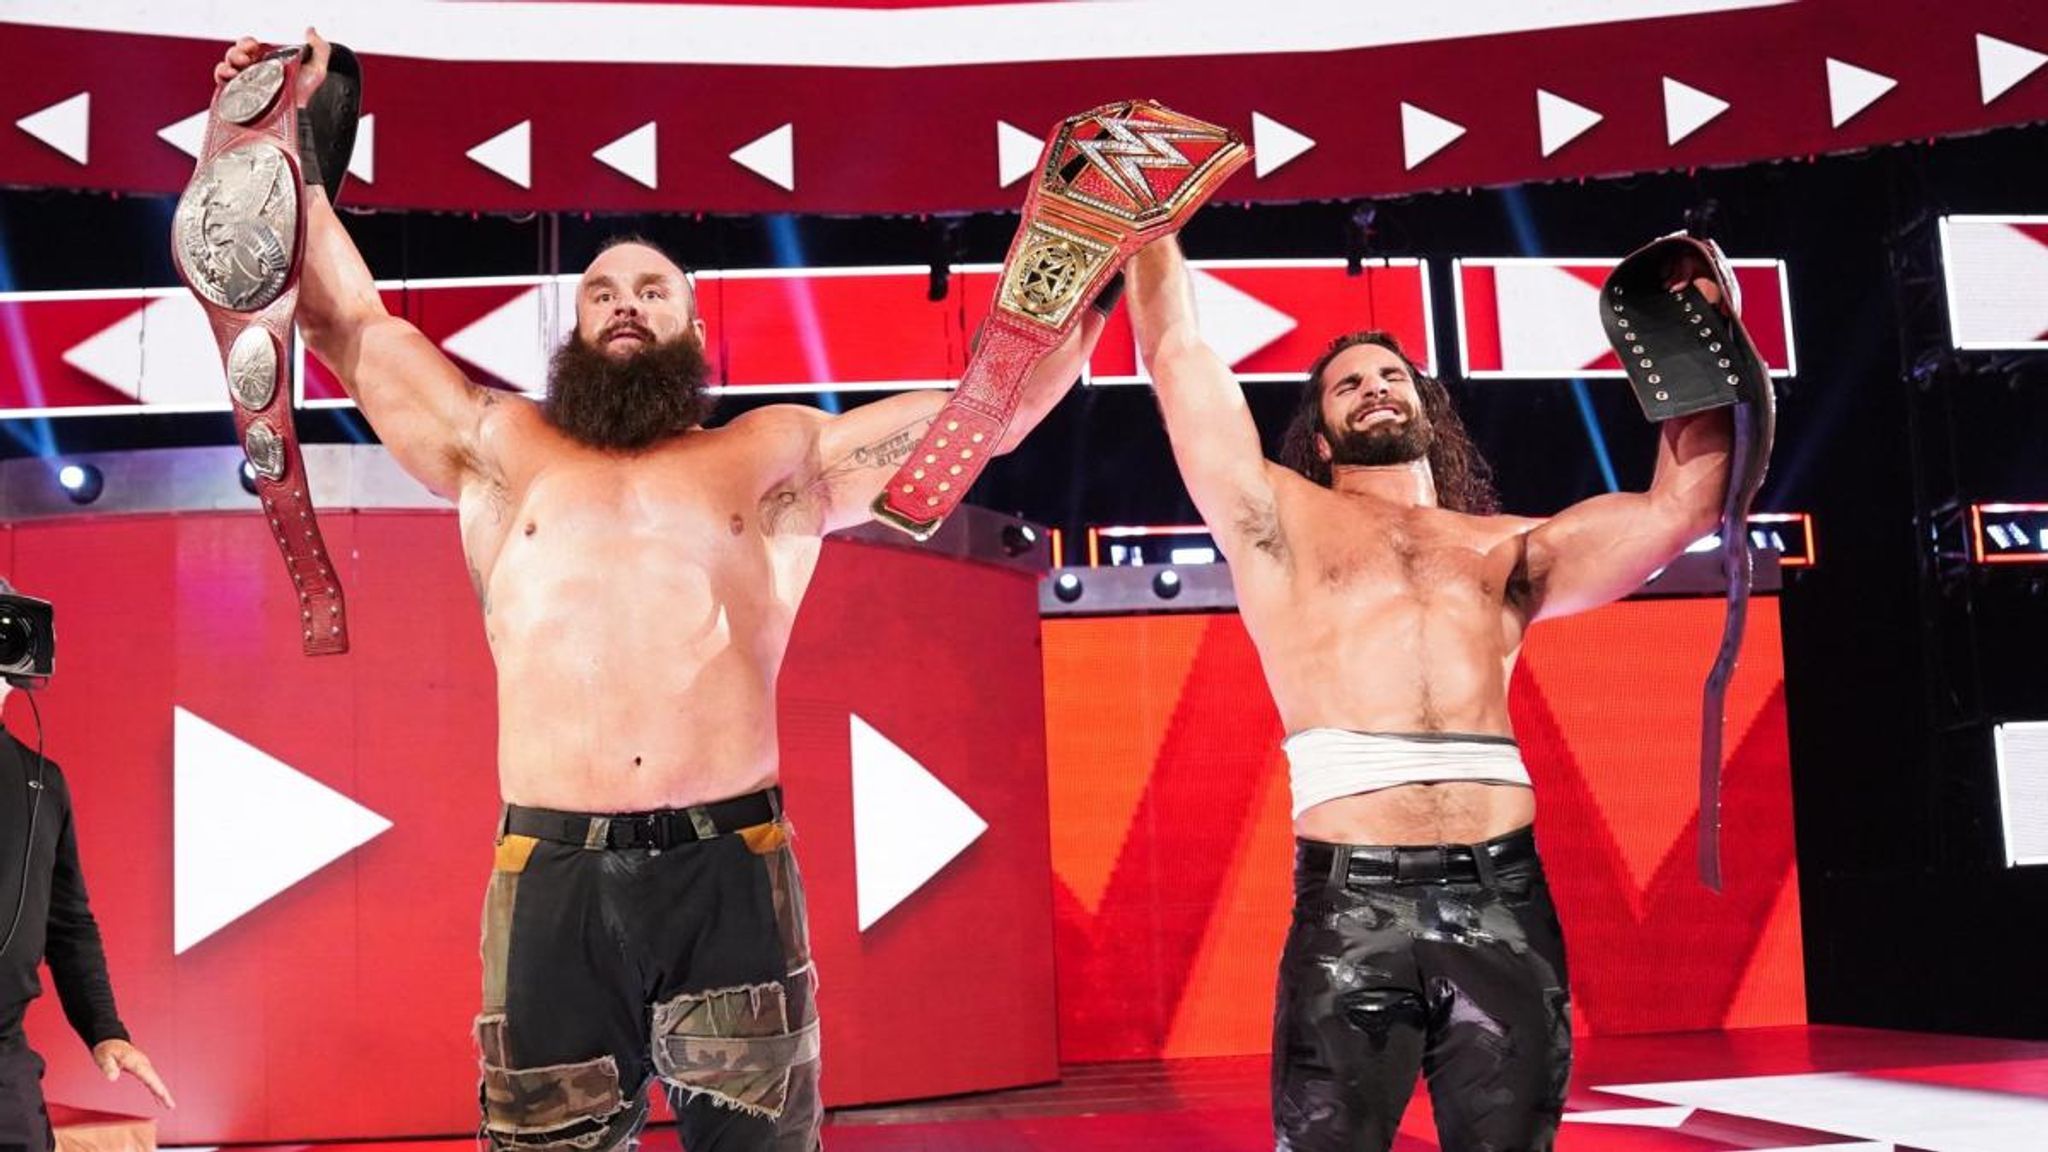 WWE Raw: Rollins and Strowman win tag titles